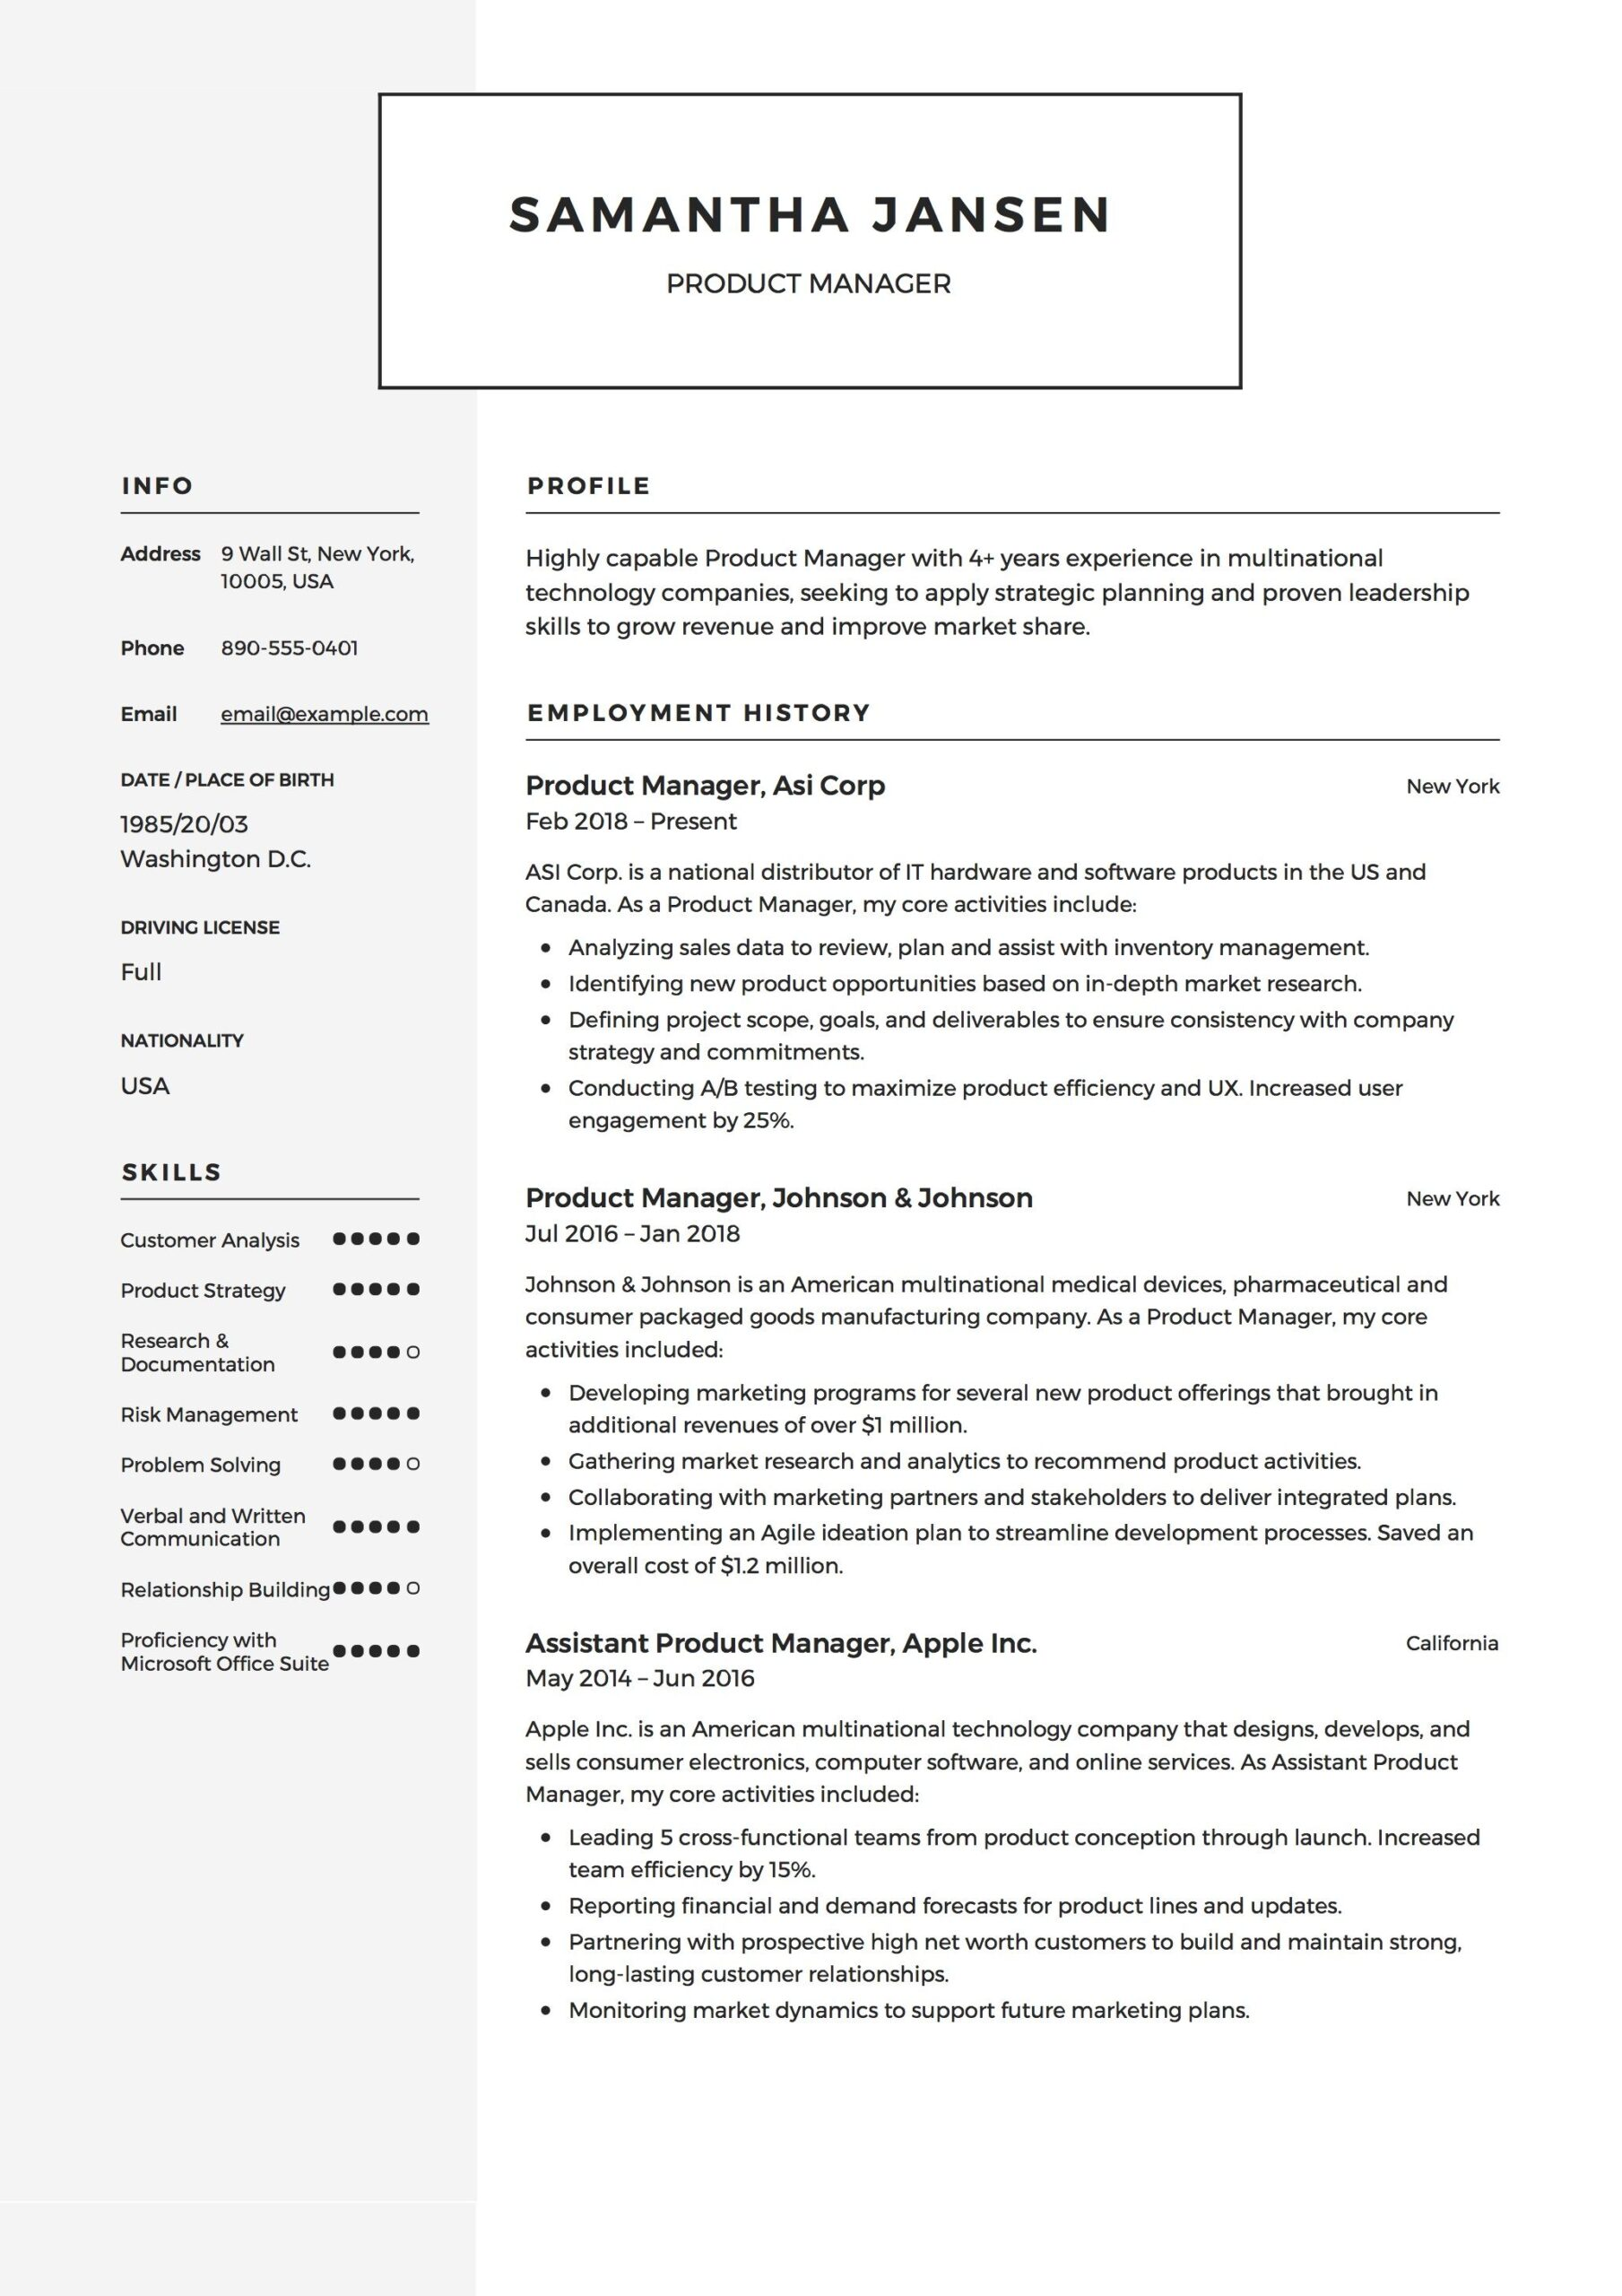 product manager resume sample template example cv formal design examples pdf for acting Resume Product Manager Resume Sample